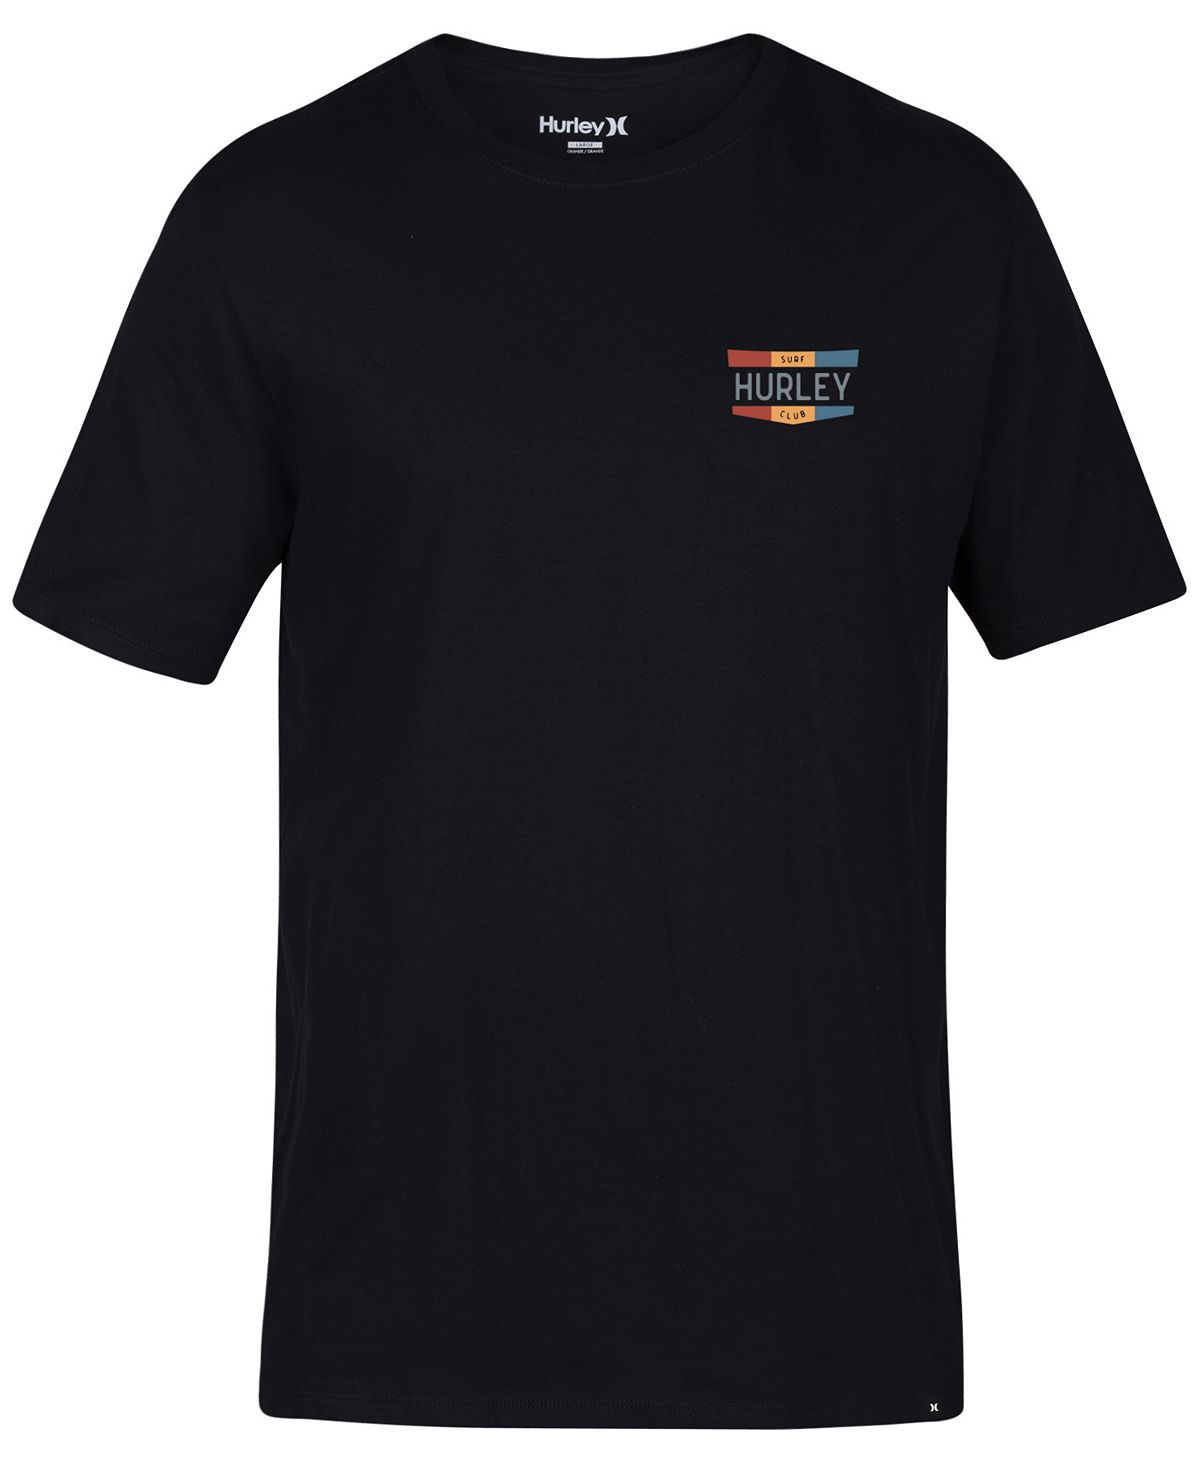 Hurley Badge Graphic T-shirt